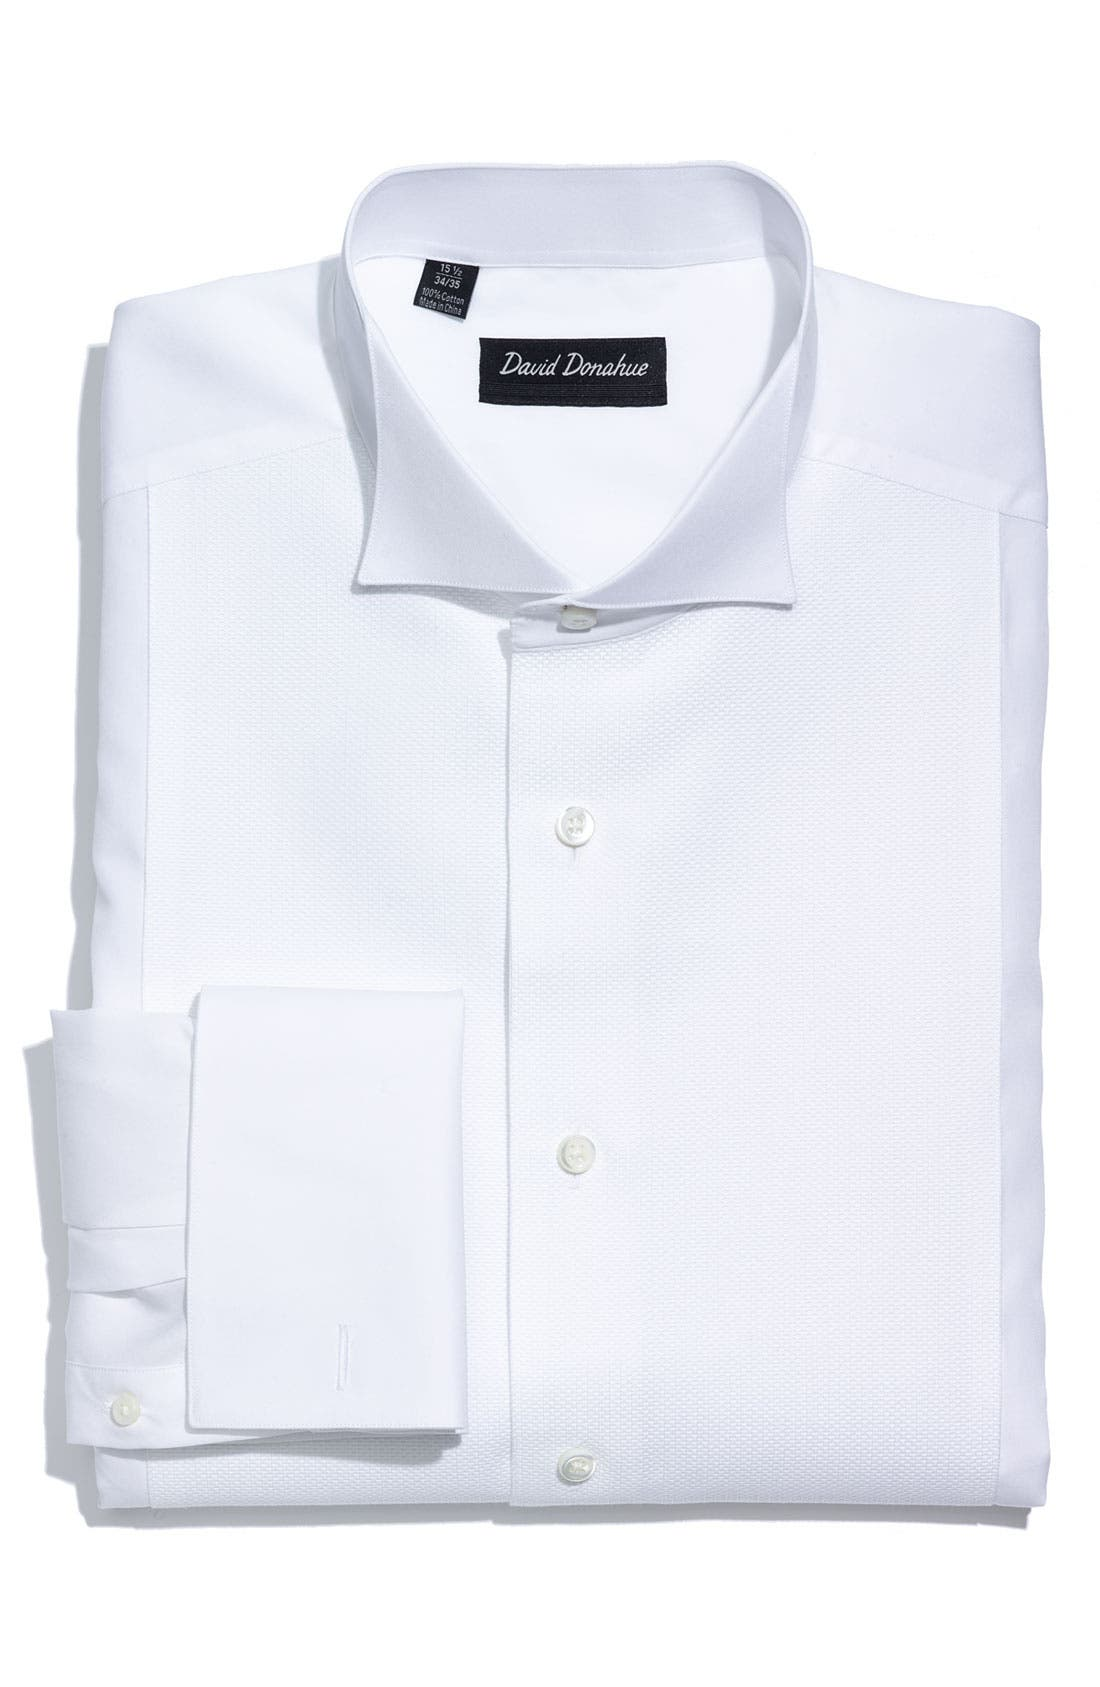 Main Image - David Donahue Regular Fit Bib Front French Cuff Tuxedo Shirt